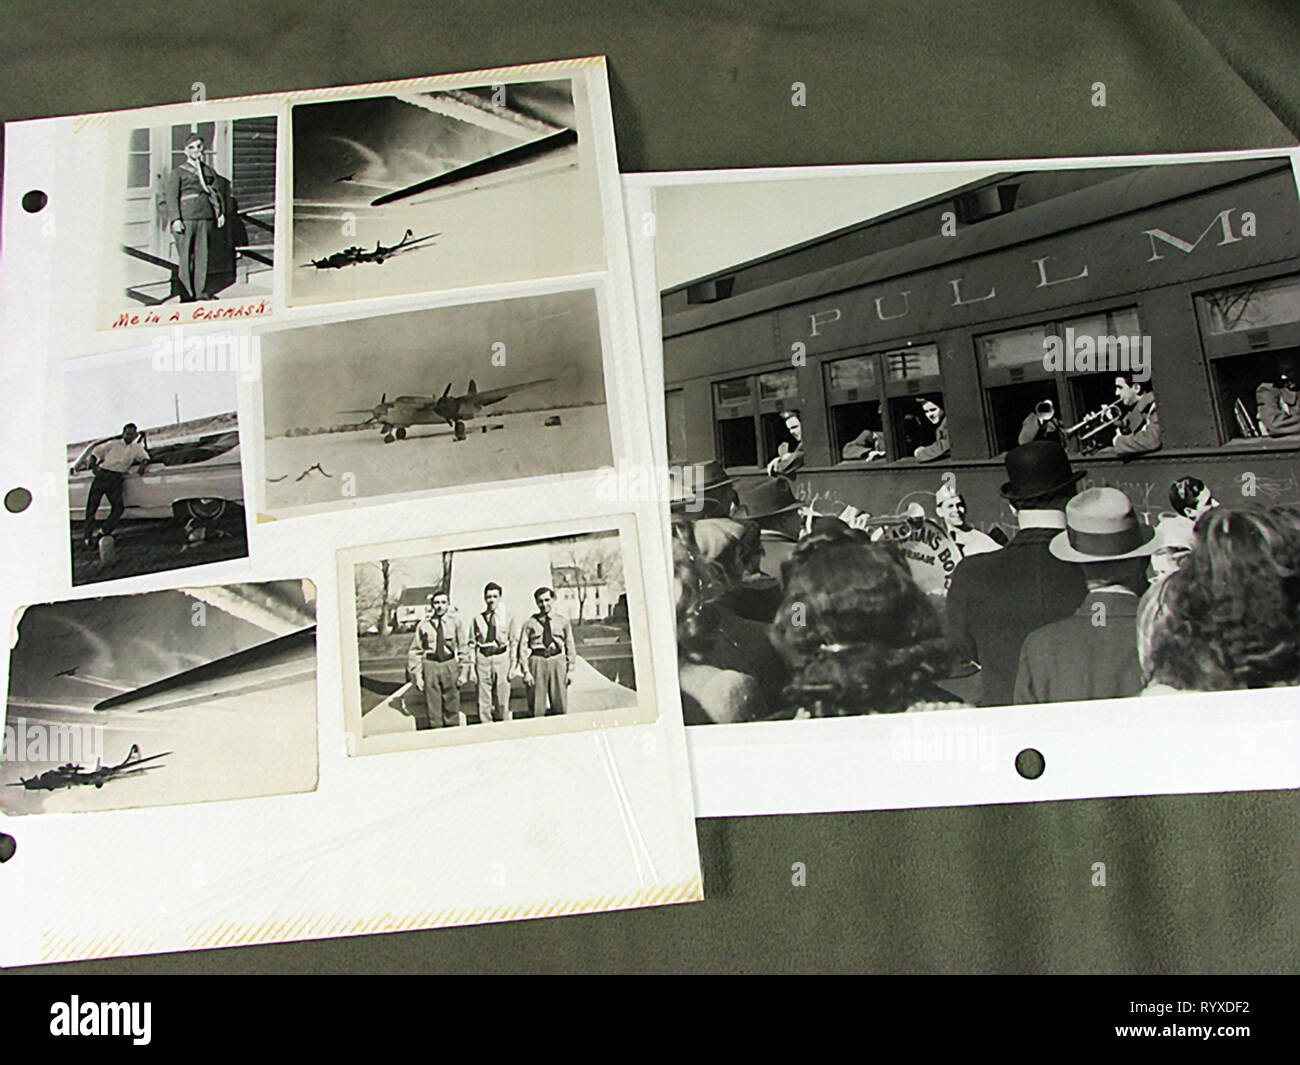 Personal photographs and memorabilia of fighting Americans during the Second World War. - Stock Image